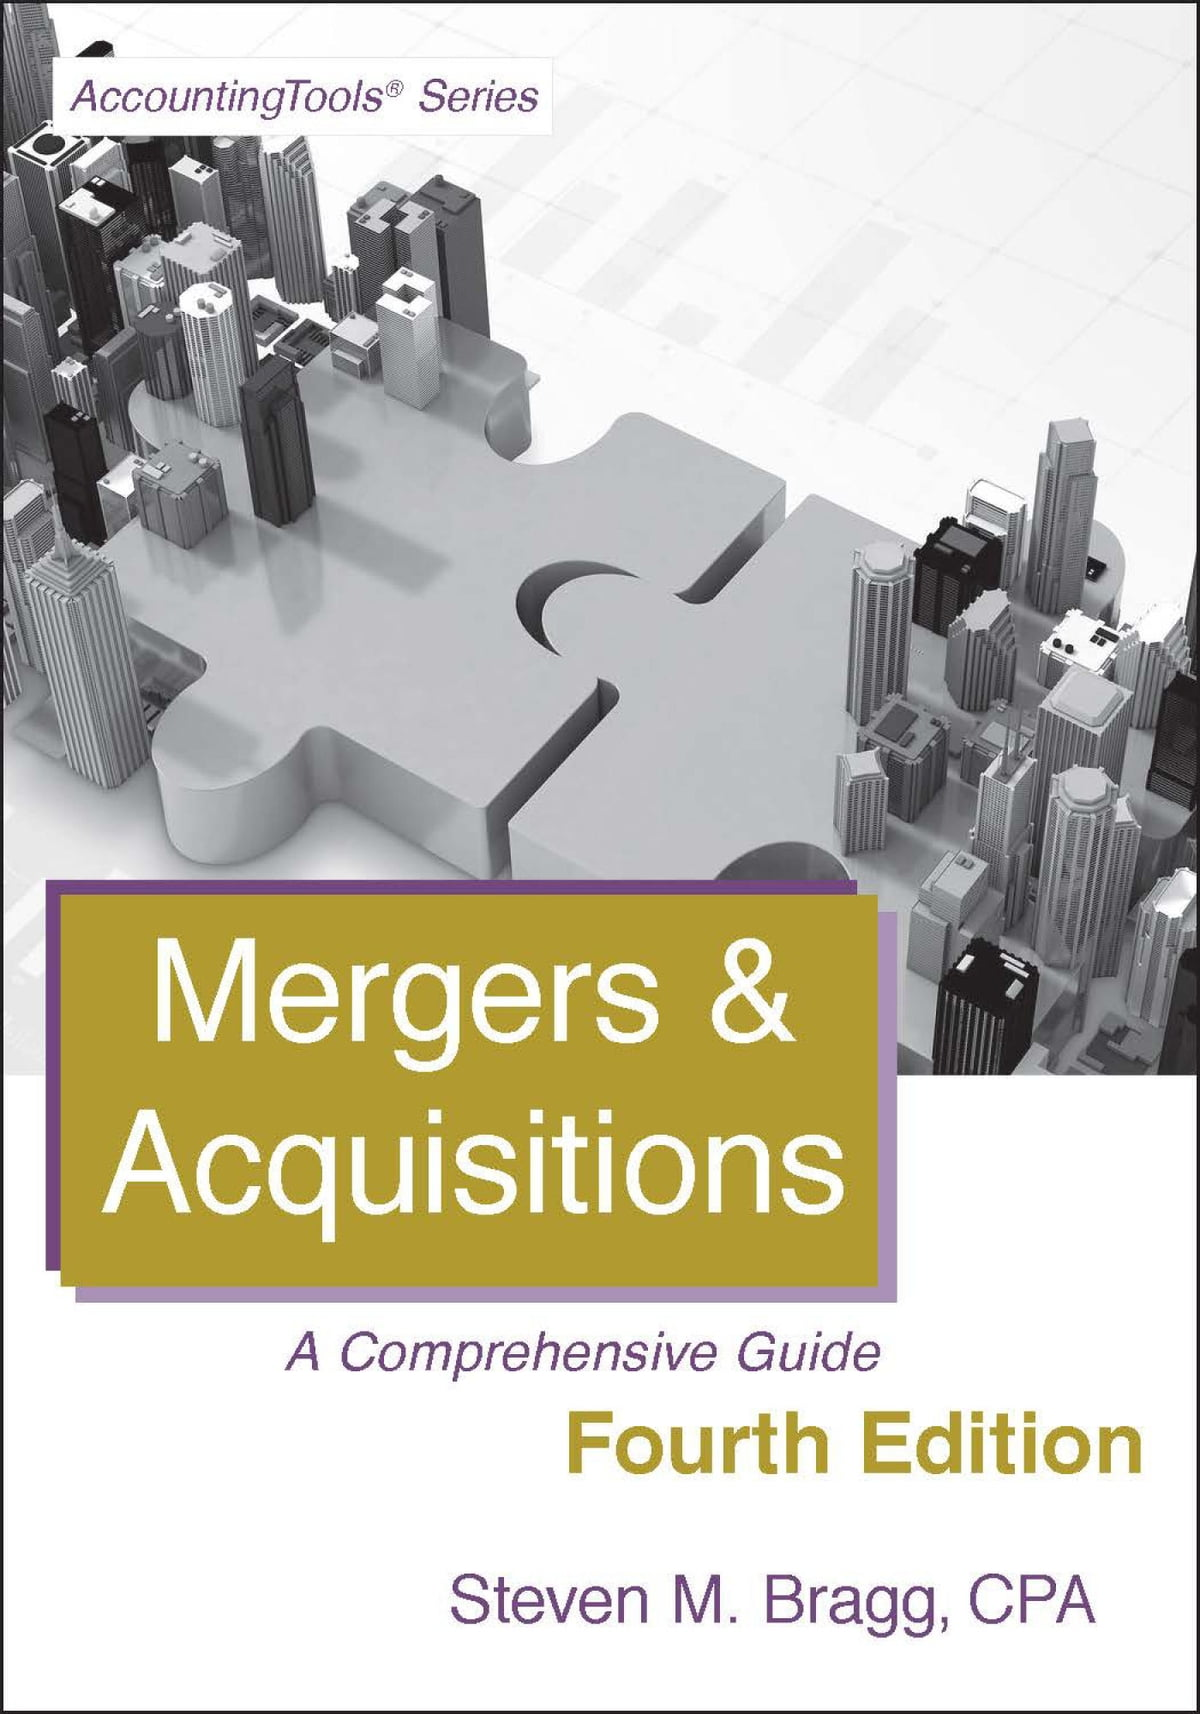 Mergers & Acquisitions: Fourth Edition ebook by Steven Bragg - Rakuten Kobo